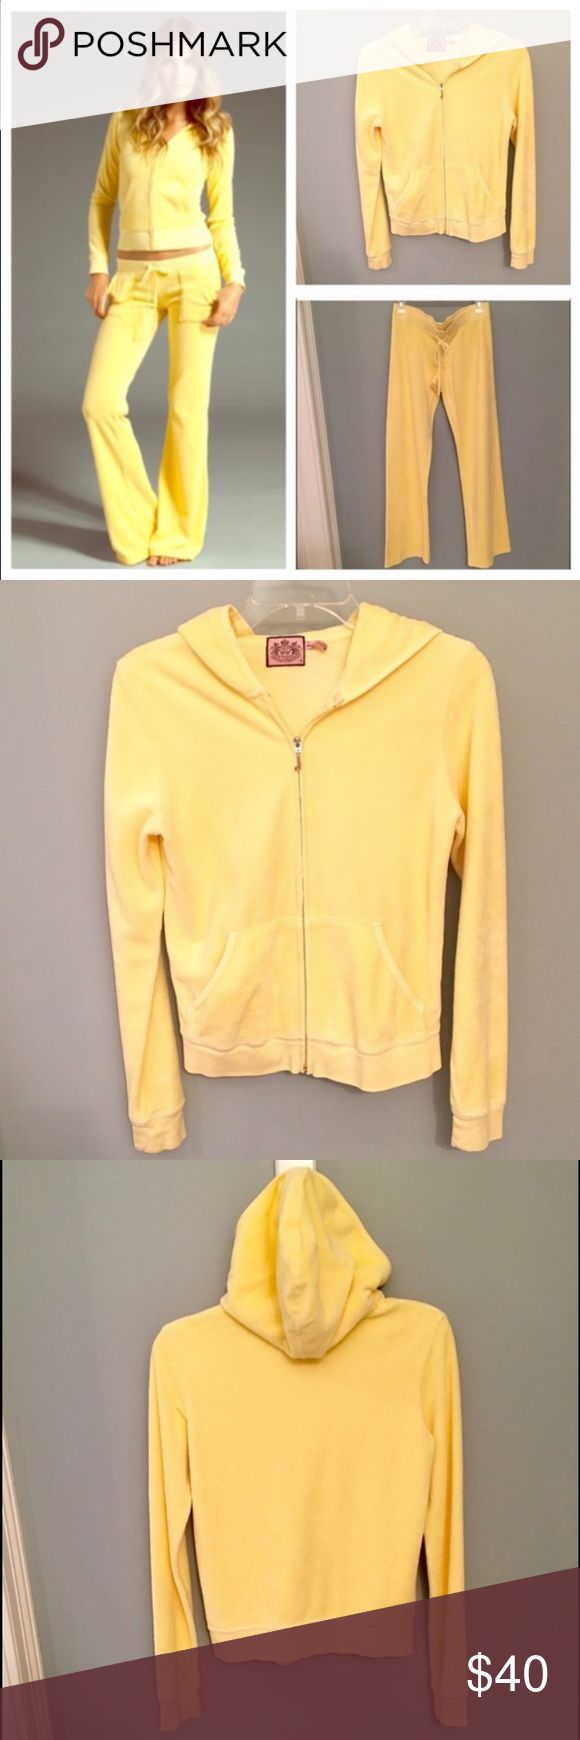 Juicy Couture Track Suit Juicy Couture Yellow Terrycloth Track Suit - zip up hooded jacket and matching sweats. *SMALL Pants* and *MEDIUM Jacket* Juicy Couture Tops Sweatshirts & Hoodies